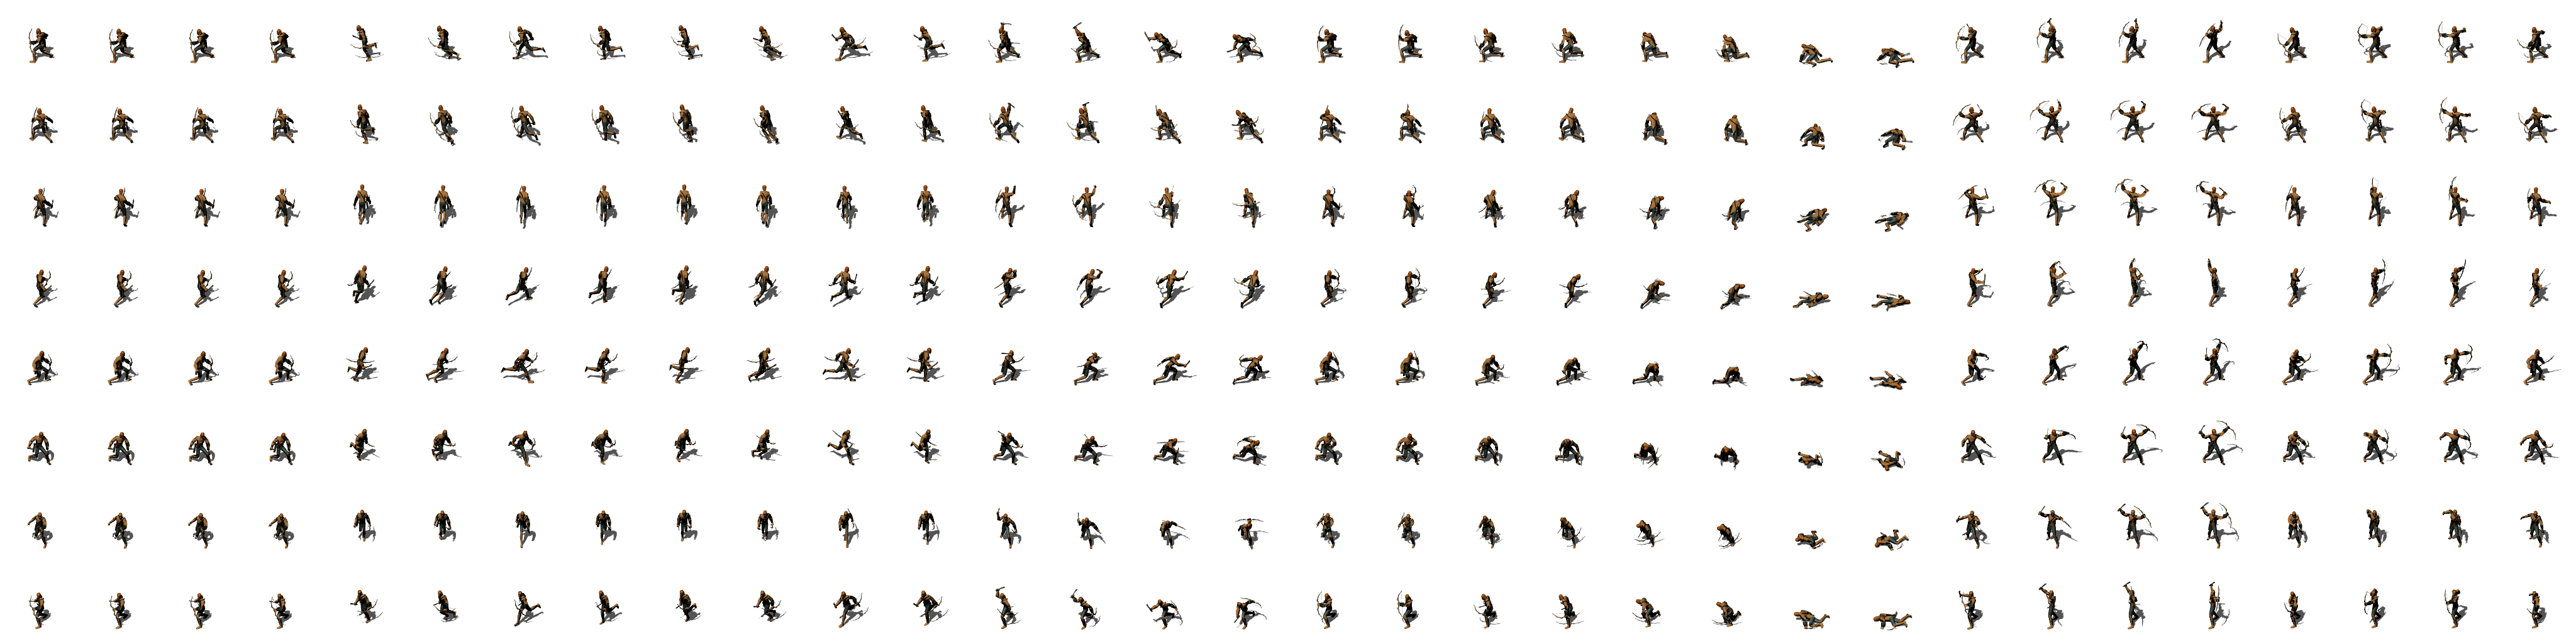 Enemy sprite png orc. Flare sheets opengameart org